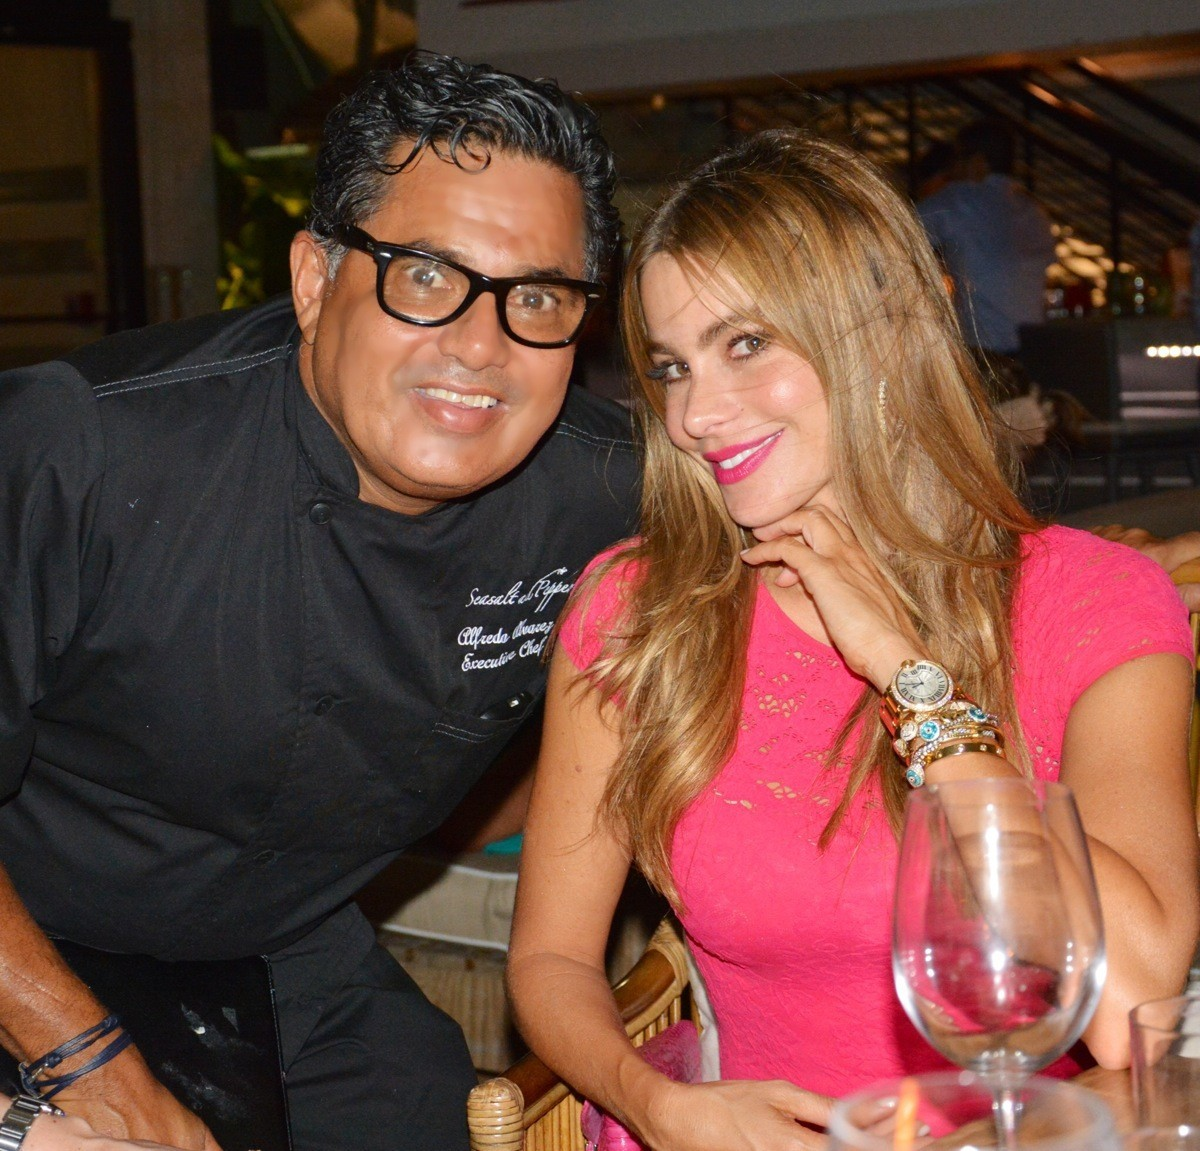 Celeb-spotting around South Florida - Actress Sofia Vergara and Chef Alfredo Alvarez